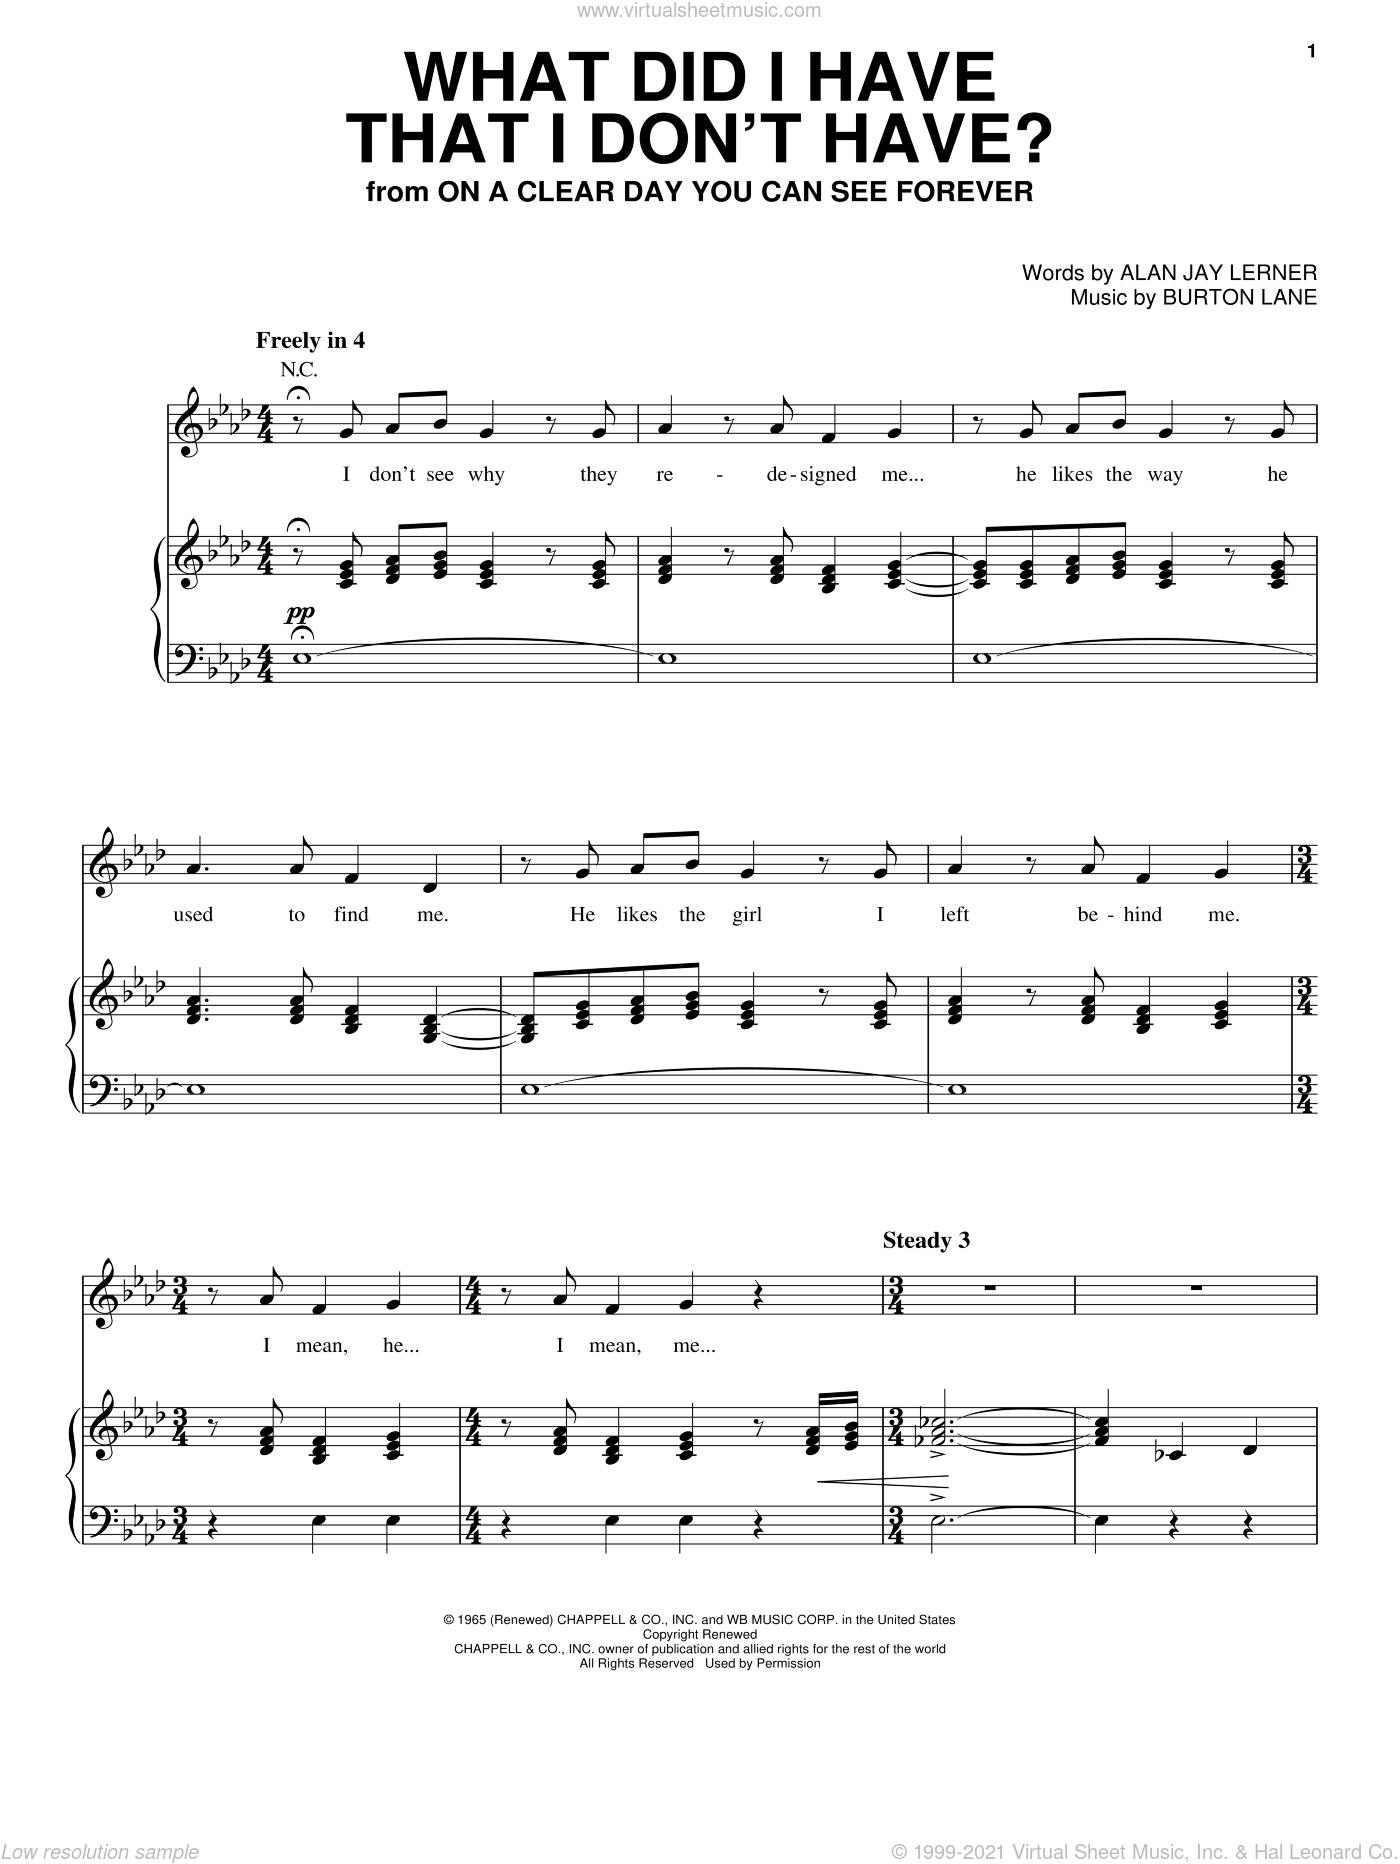 What Did I Have That I Don't Have? sheet music for voice, piano or guitar by Burton Lane